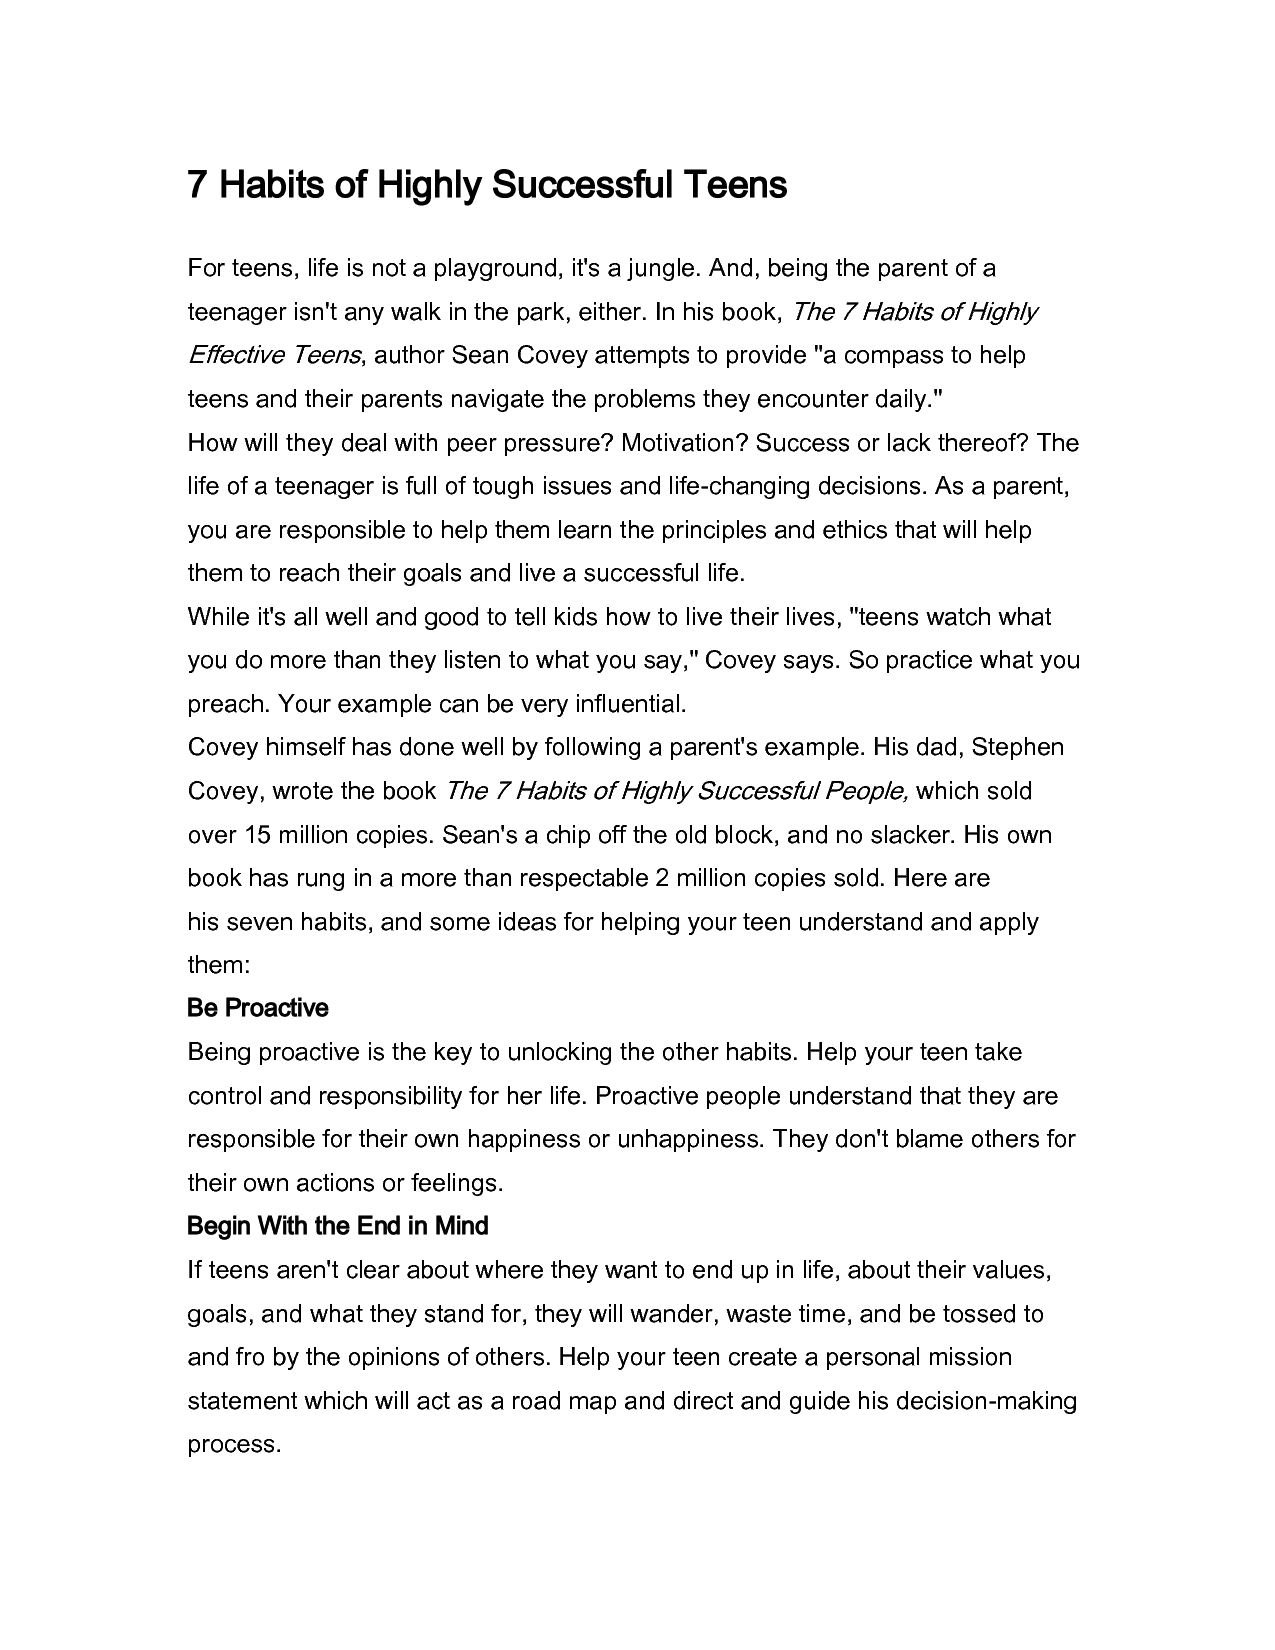 Worksheet 7 Habits Of Highly Effective Teens Worksheets Worksheet Fun Worksheet Study Site